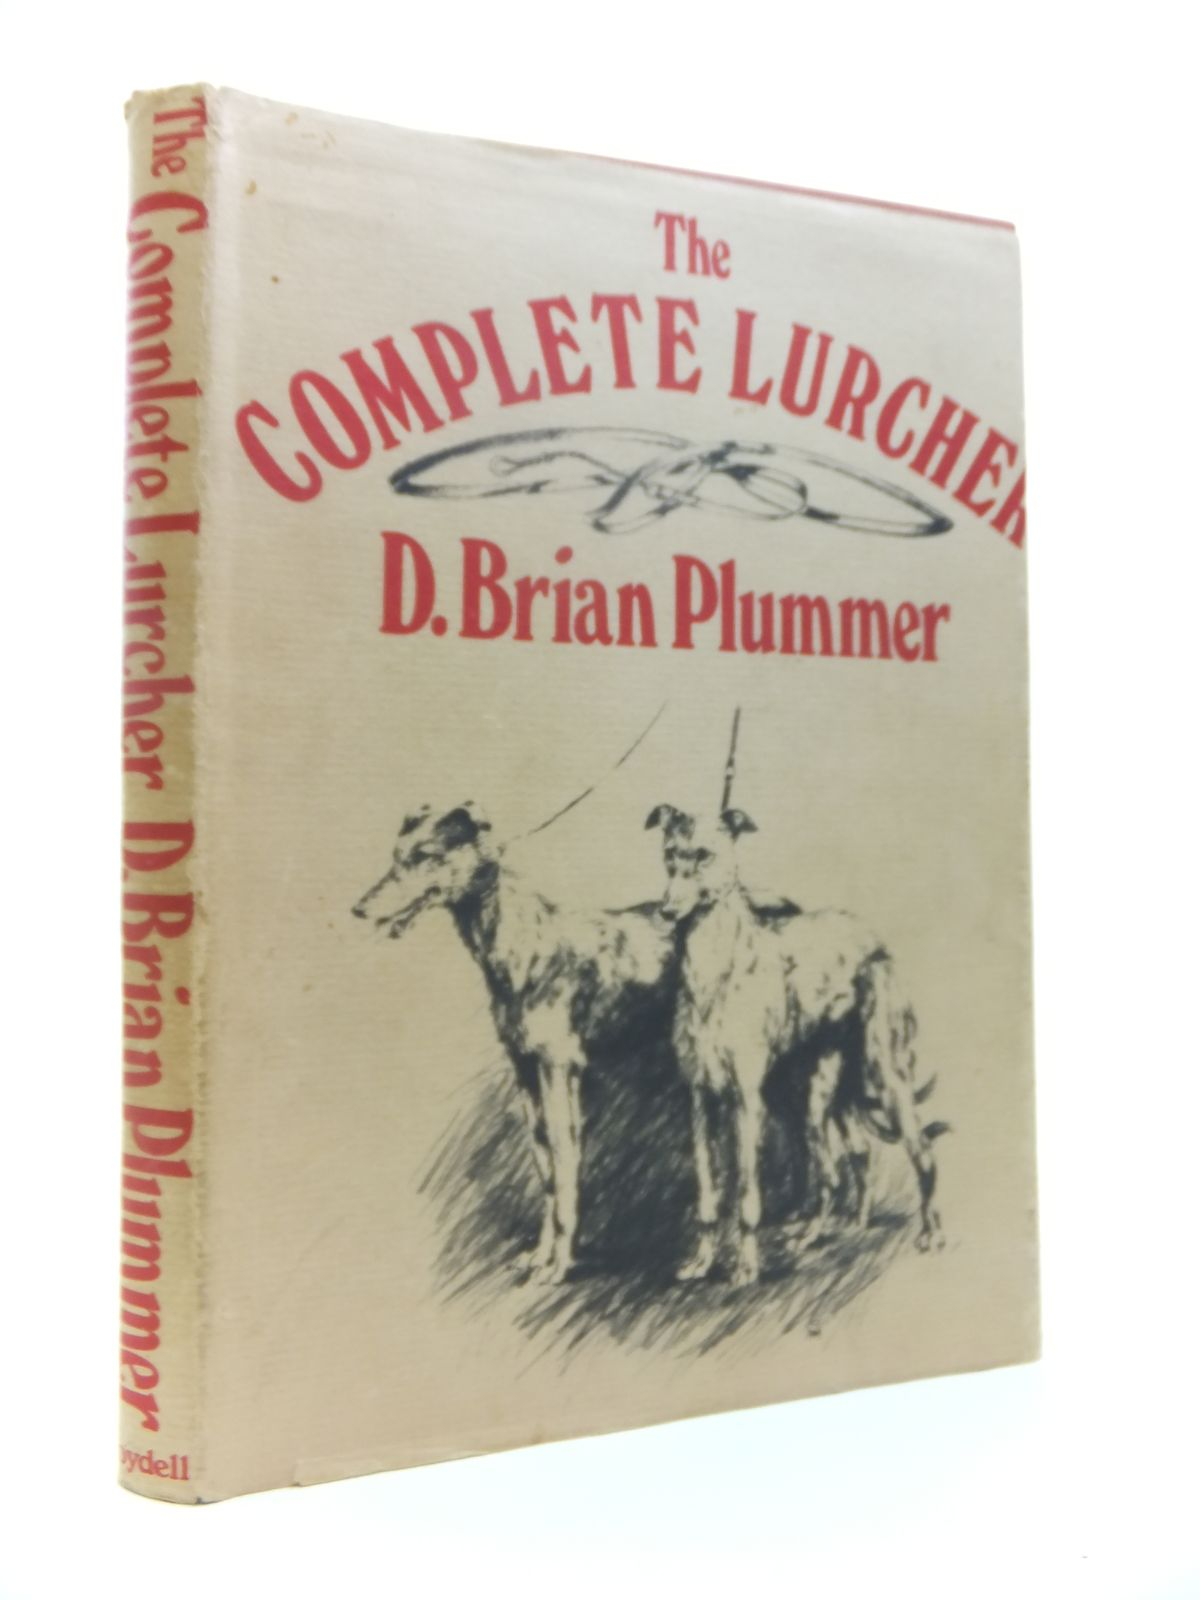 Photo of THE COMPLETE LURCHER written by Plummer, David Brian illustrated by Knowelden, Martin published by The Boydell Press (STOCK CODE: 1812039)  for sale by Stella & Rose's Books